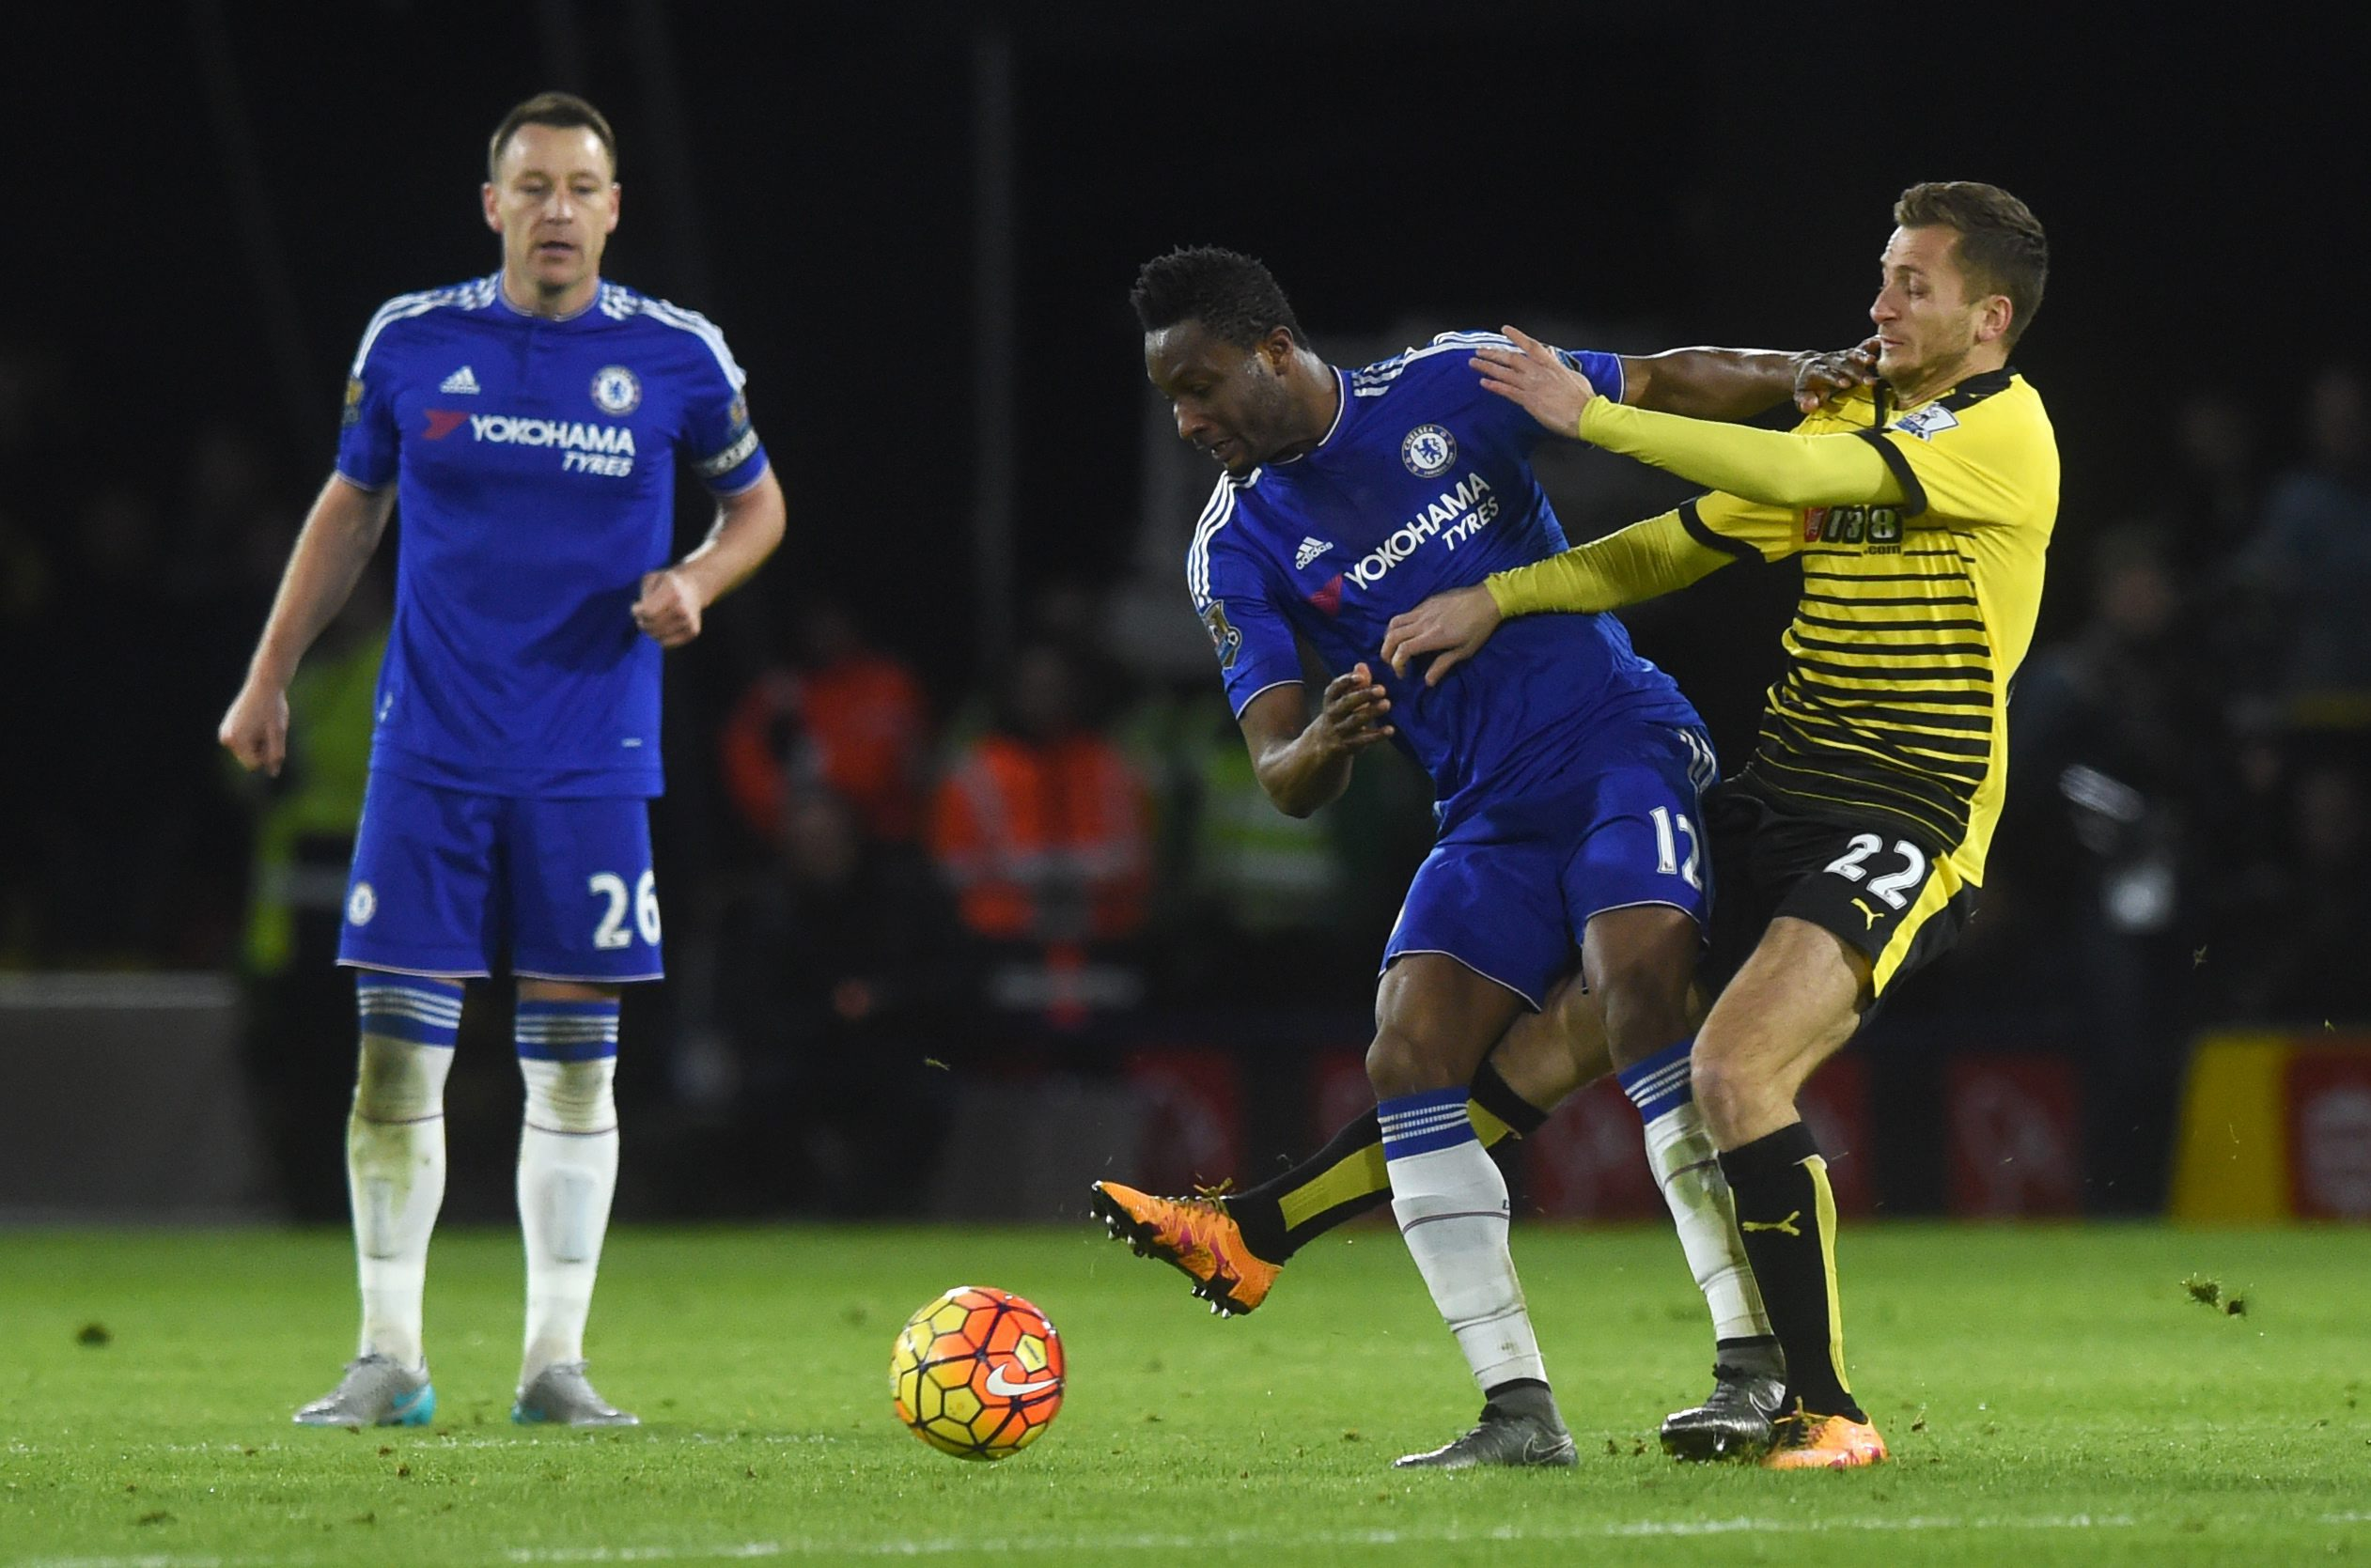 Chelsea's John Obi Mikel (centre) and Watford's Almen Abdi (right) vie for the ball during the English Premier League soccer match between Watford and Chelsea at Vicarage Road in London, Britain, 03 February 2016. EPA/WILL OLIVER